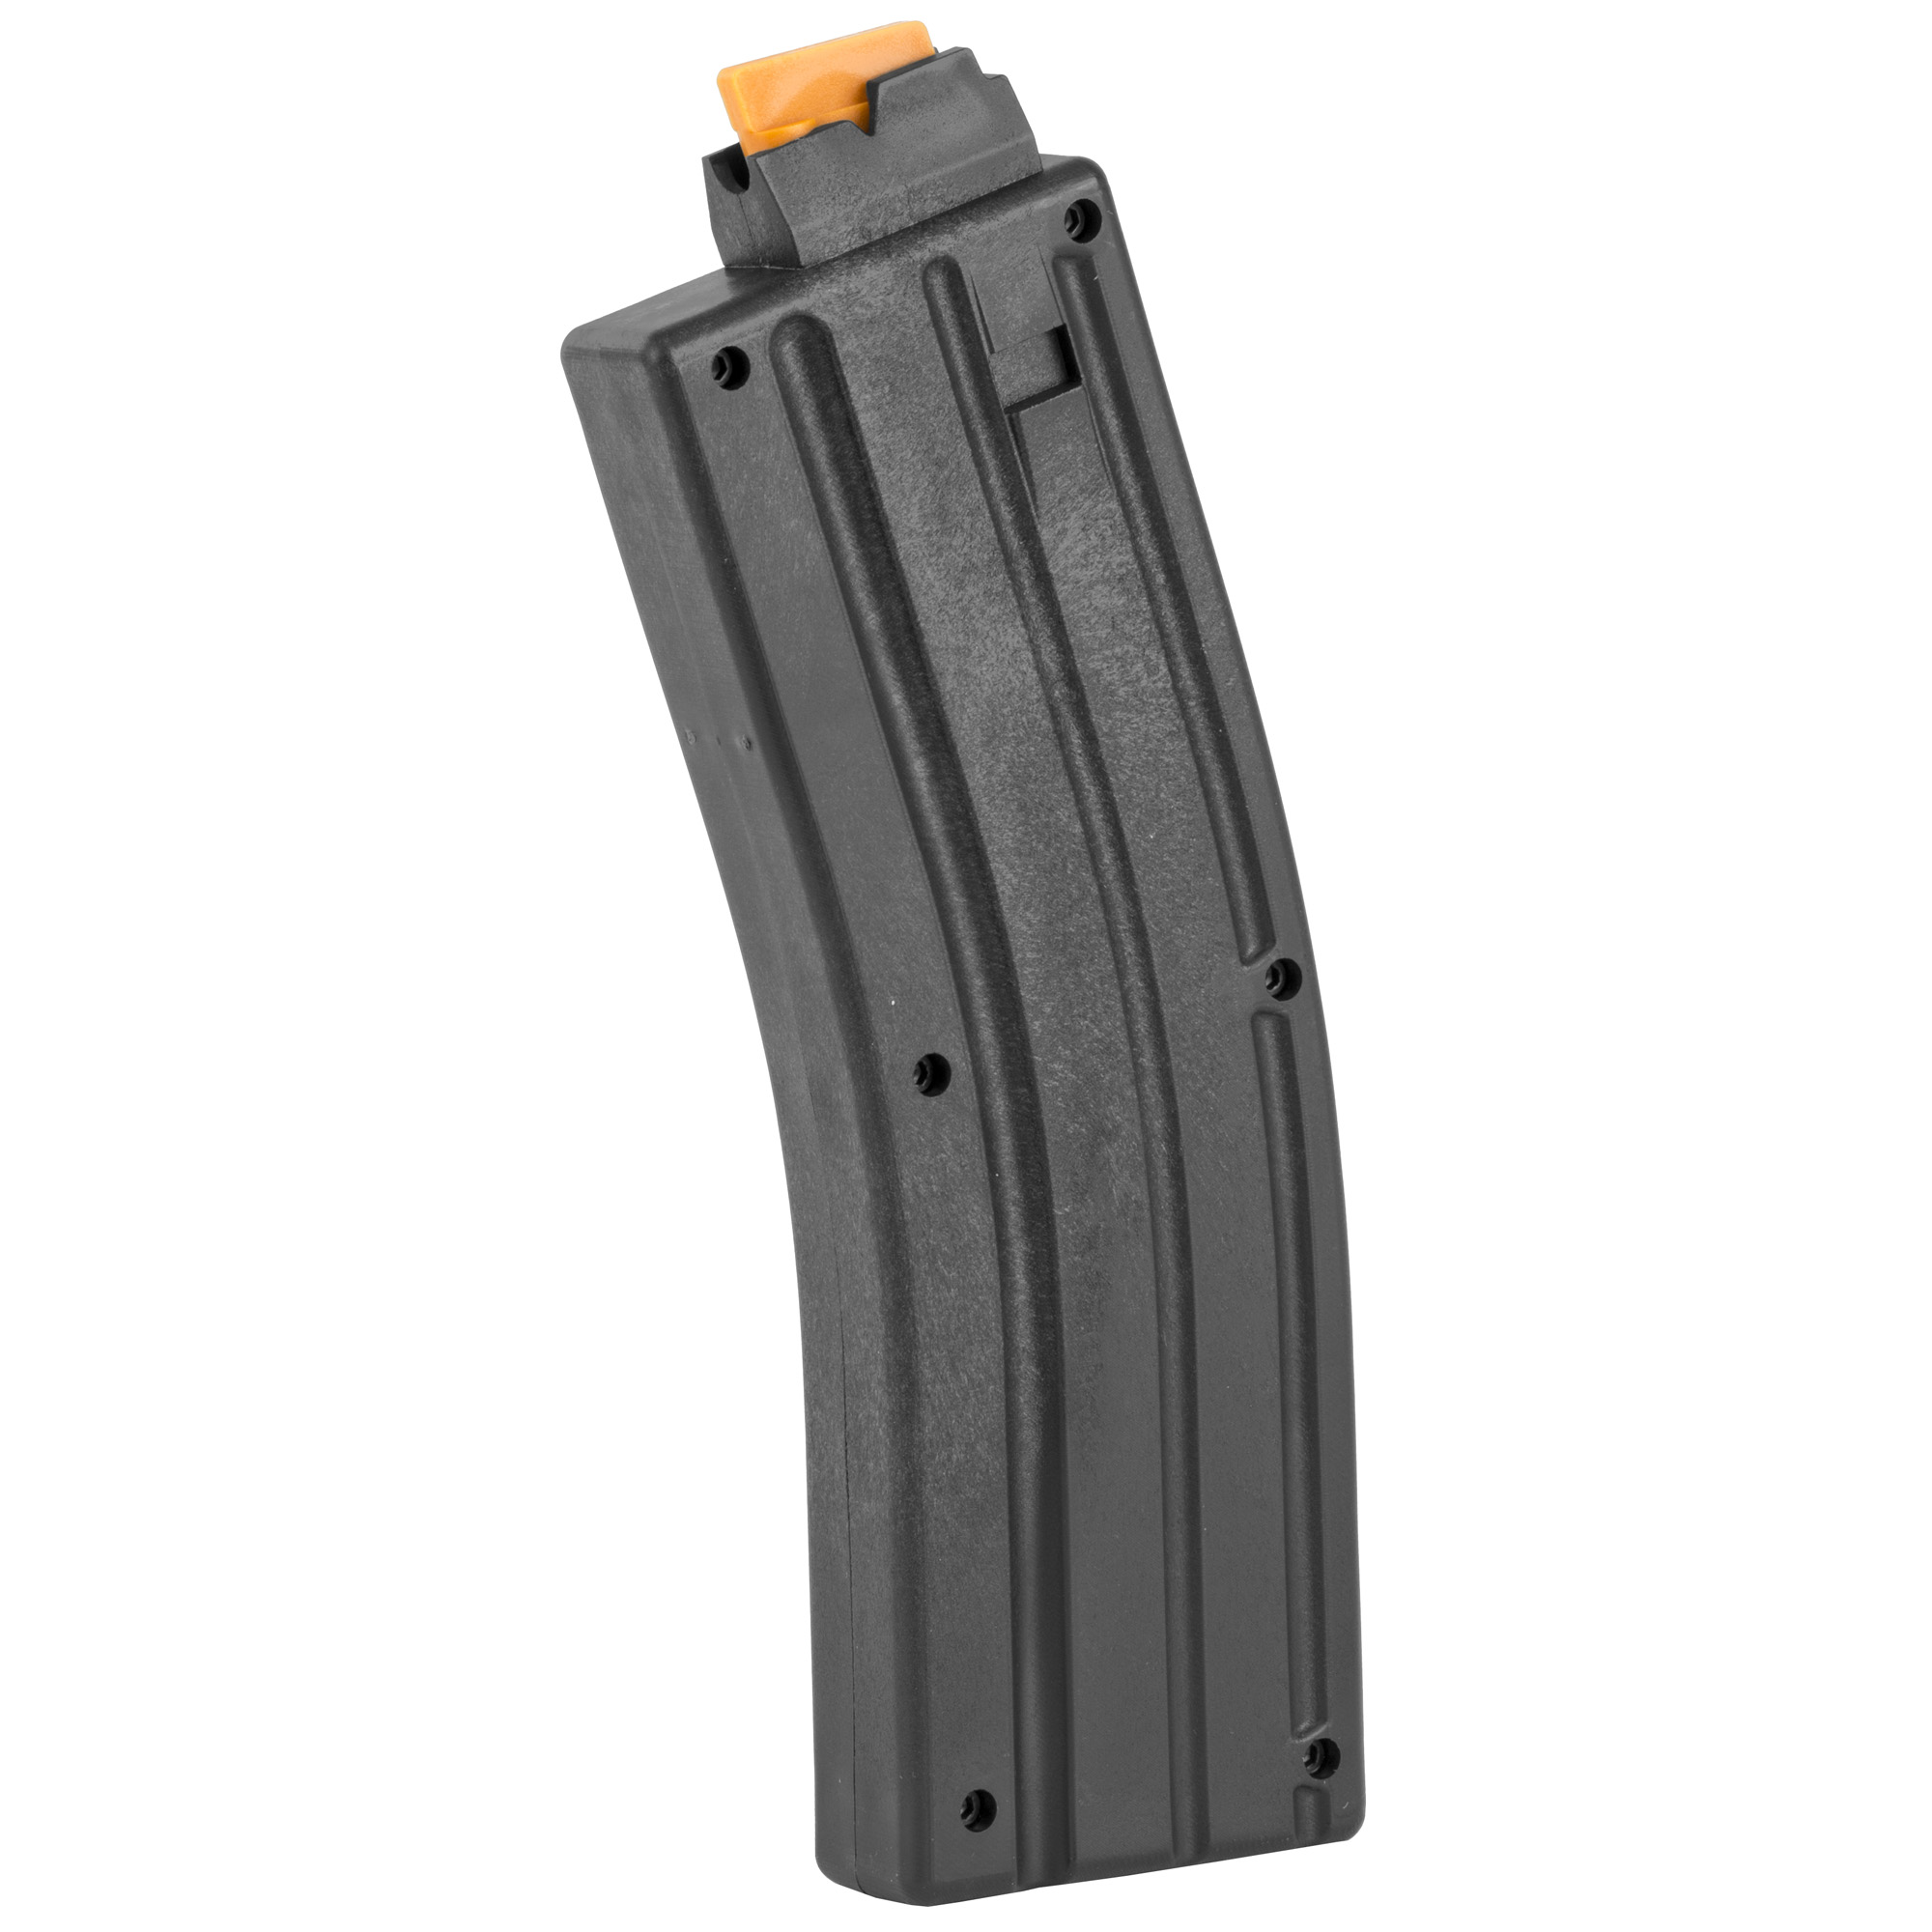 This CMMG Magazine is a standard factory replacement magazine that is designed for use with the CMMG 22LR AR conversions. This magazine holds 25 rounds of .22 Long Rifle and is made of polymer.